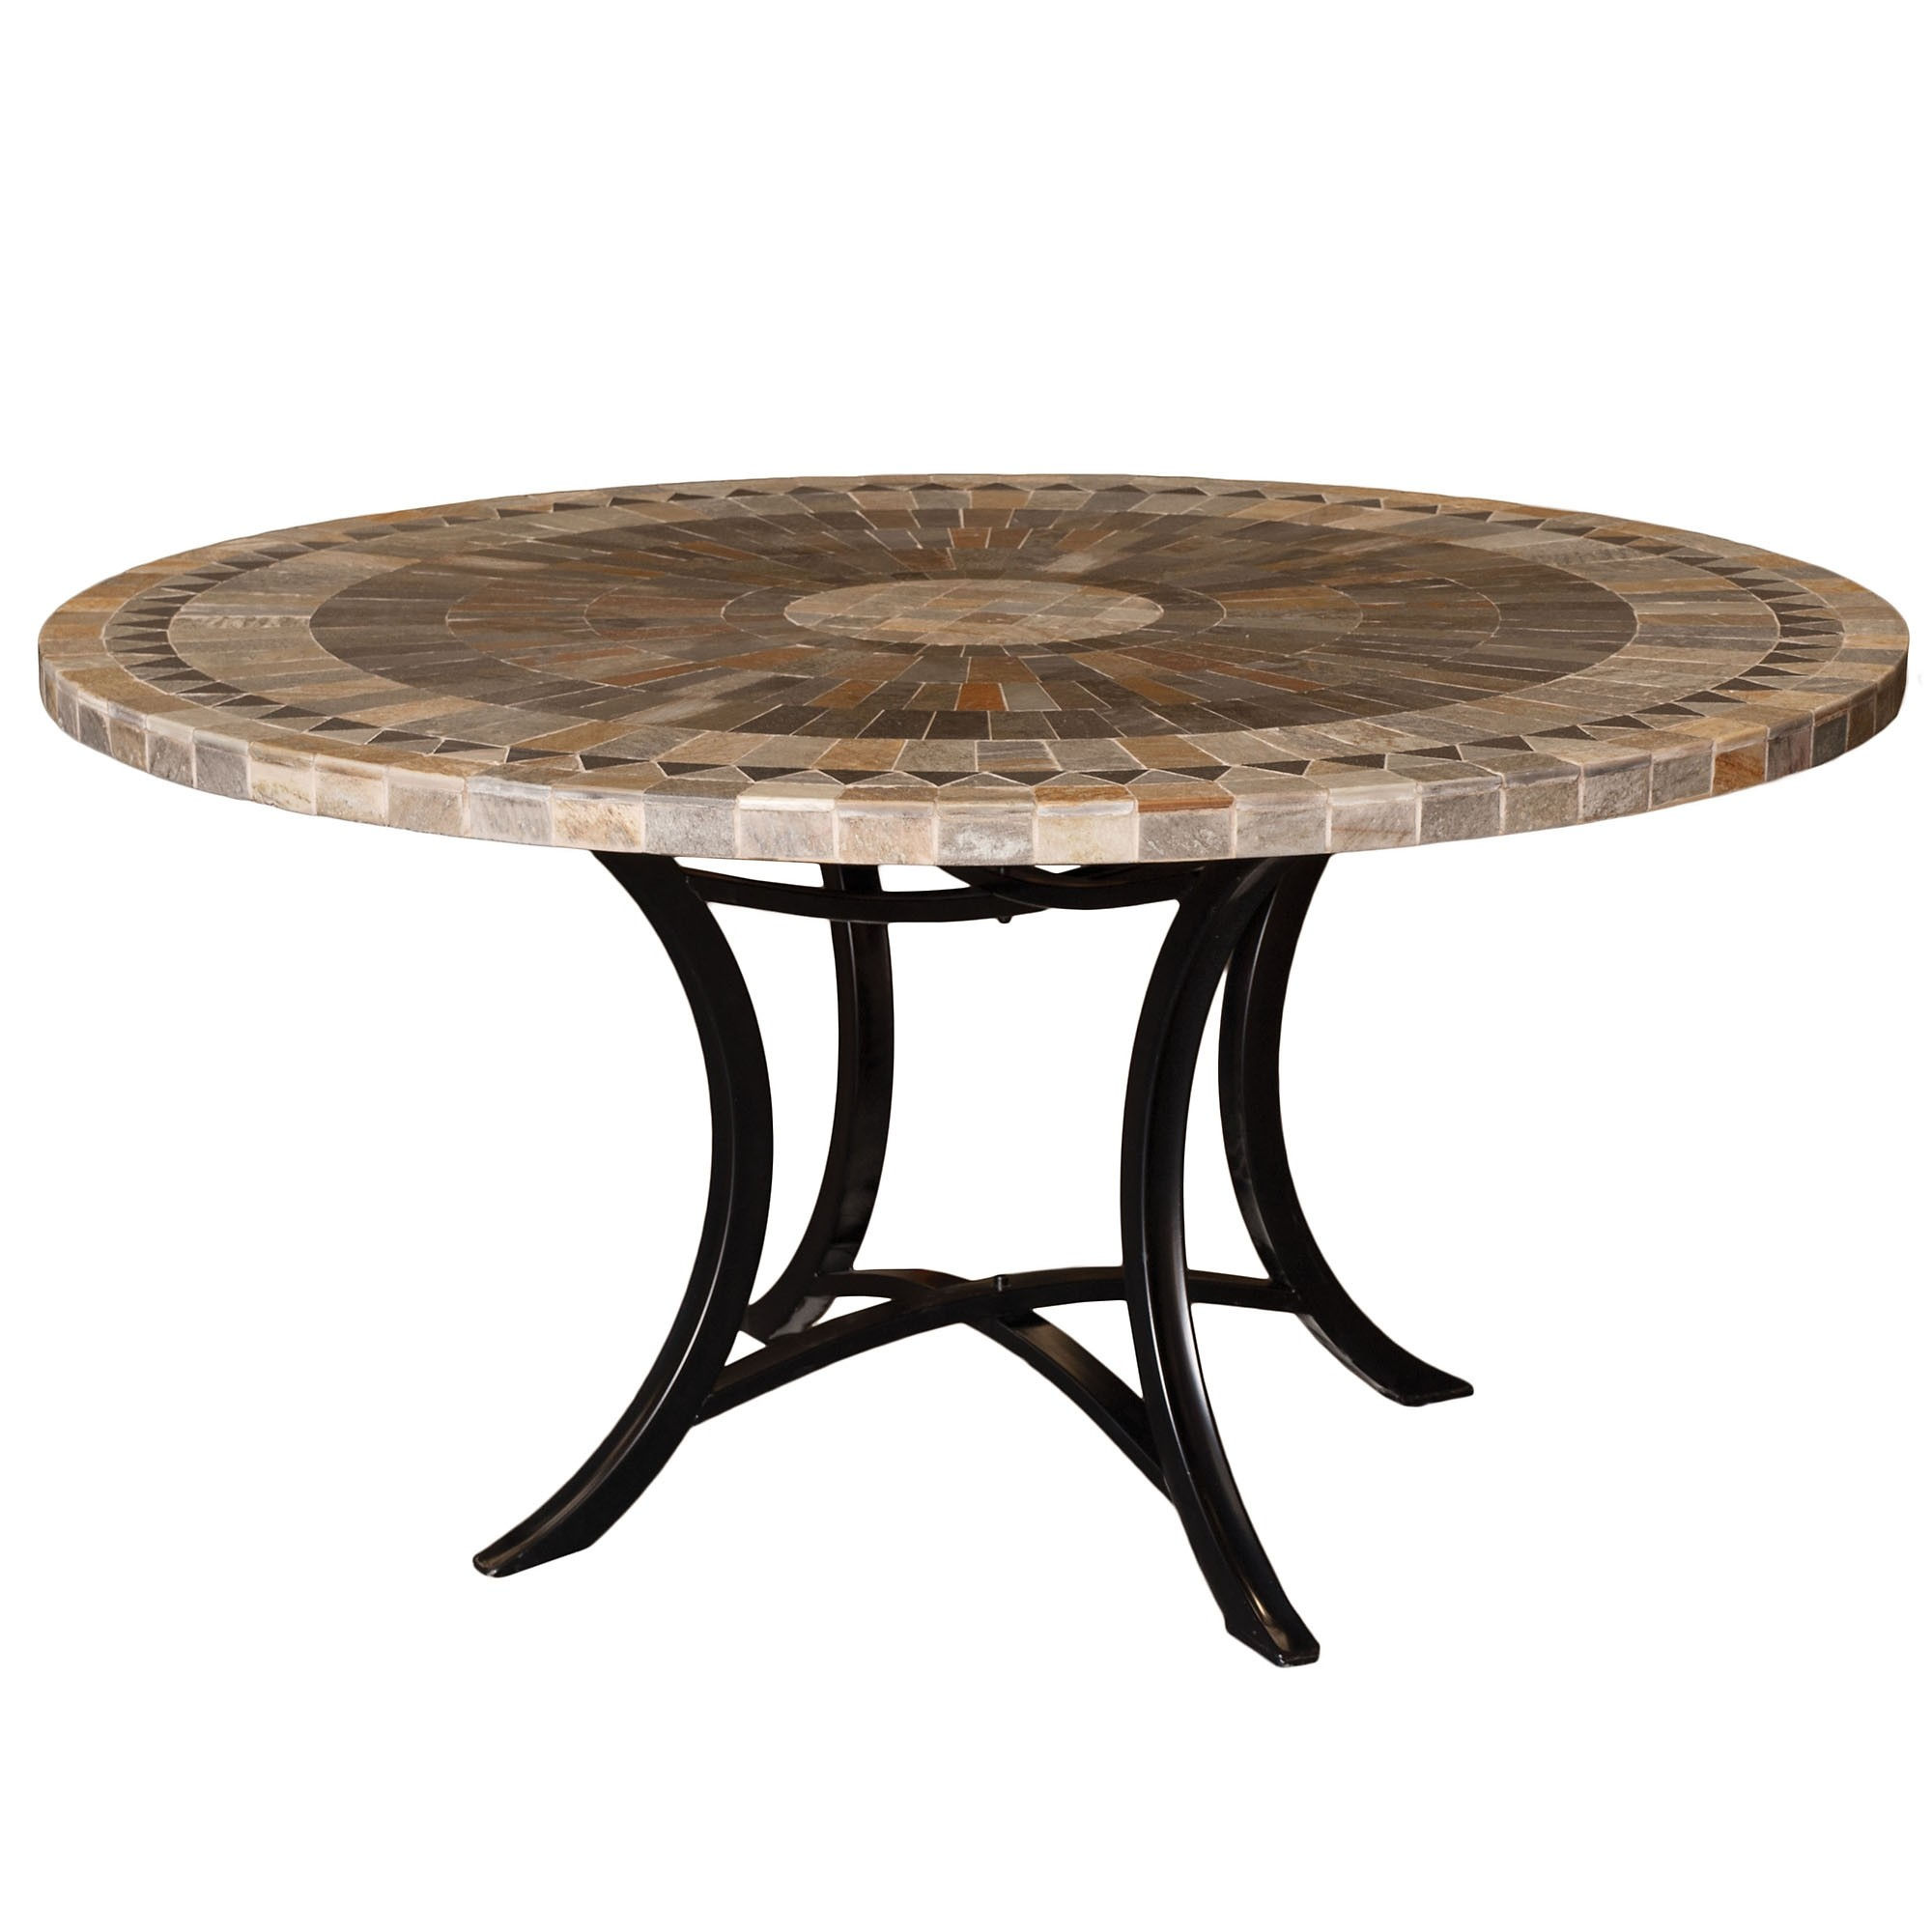 Sunray Slate Stone Round Outdoor Dining Table, Minerva Base, 120cm